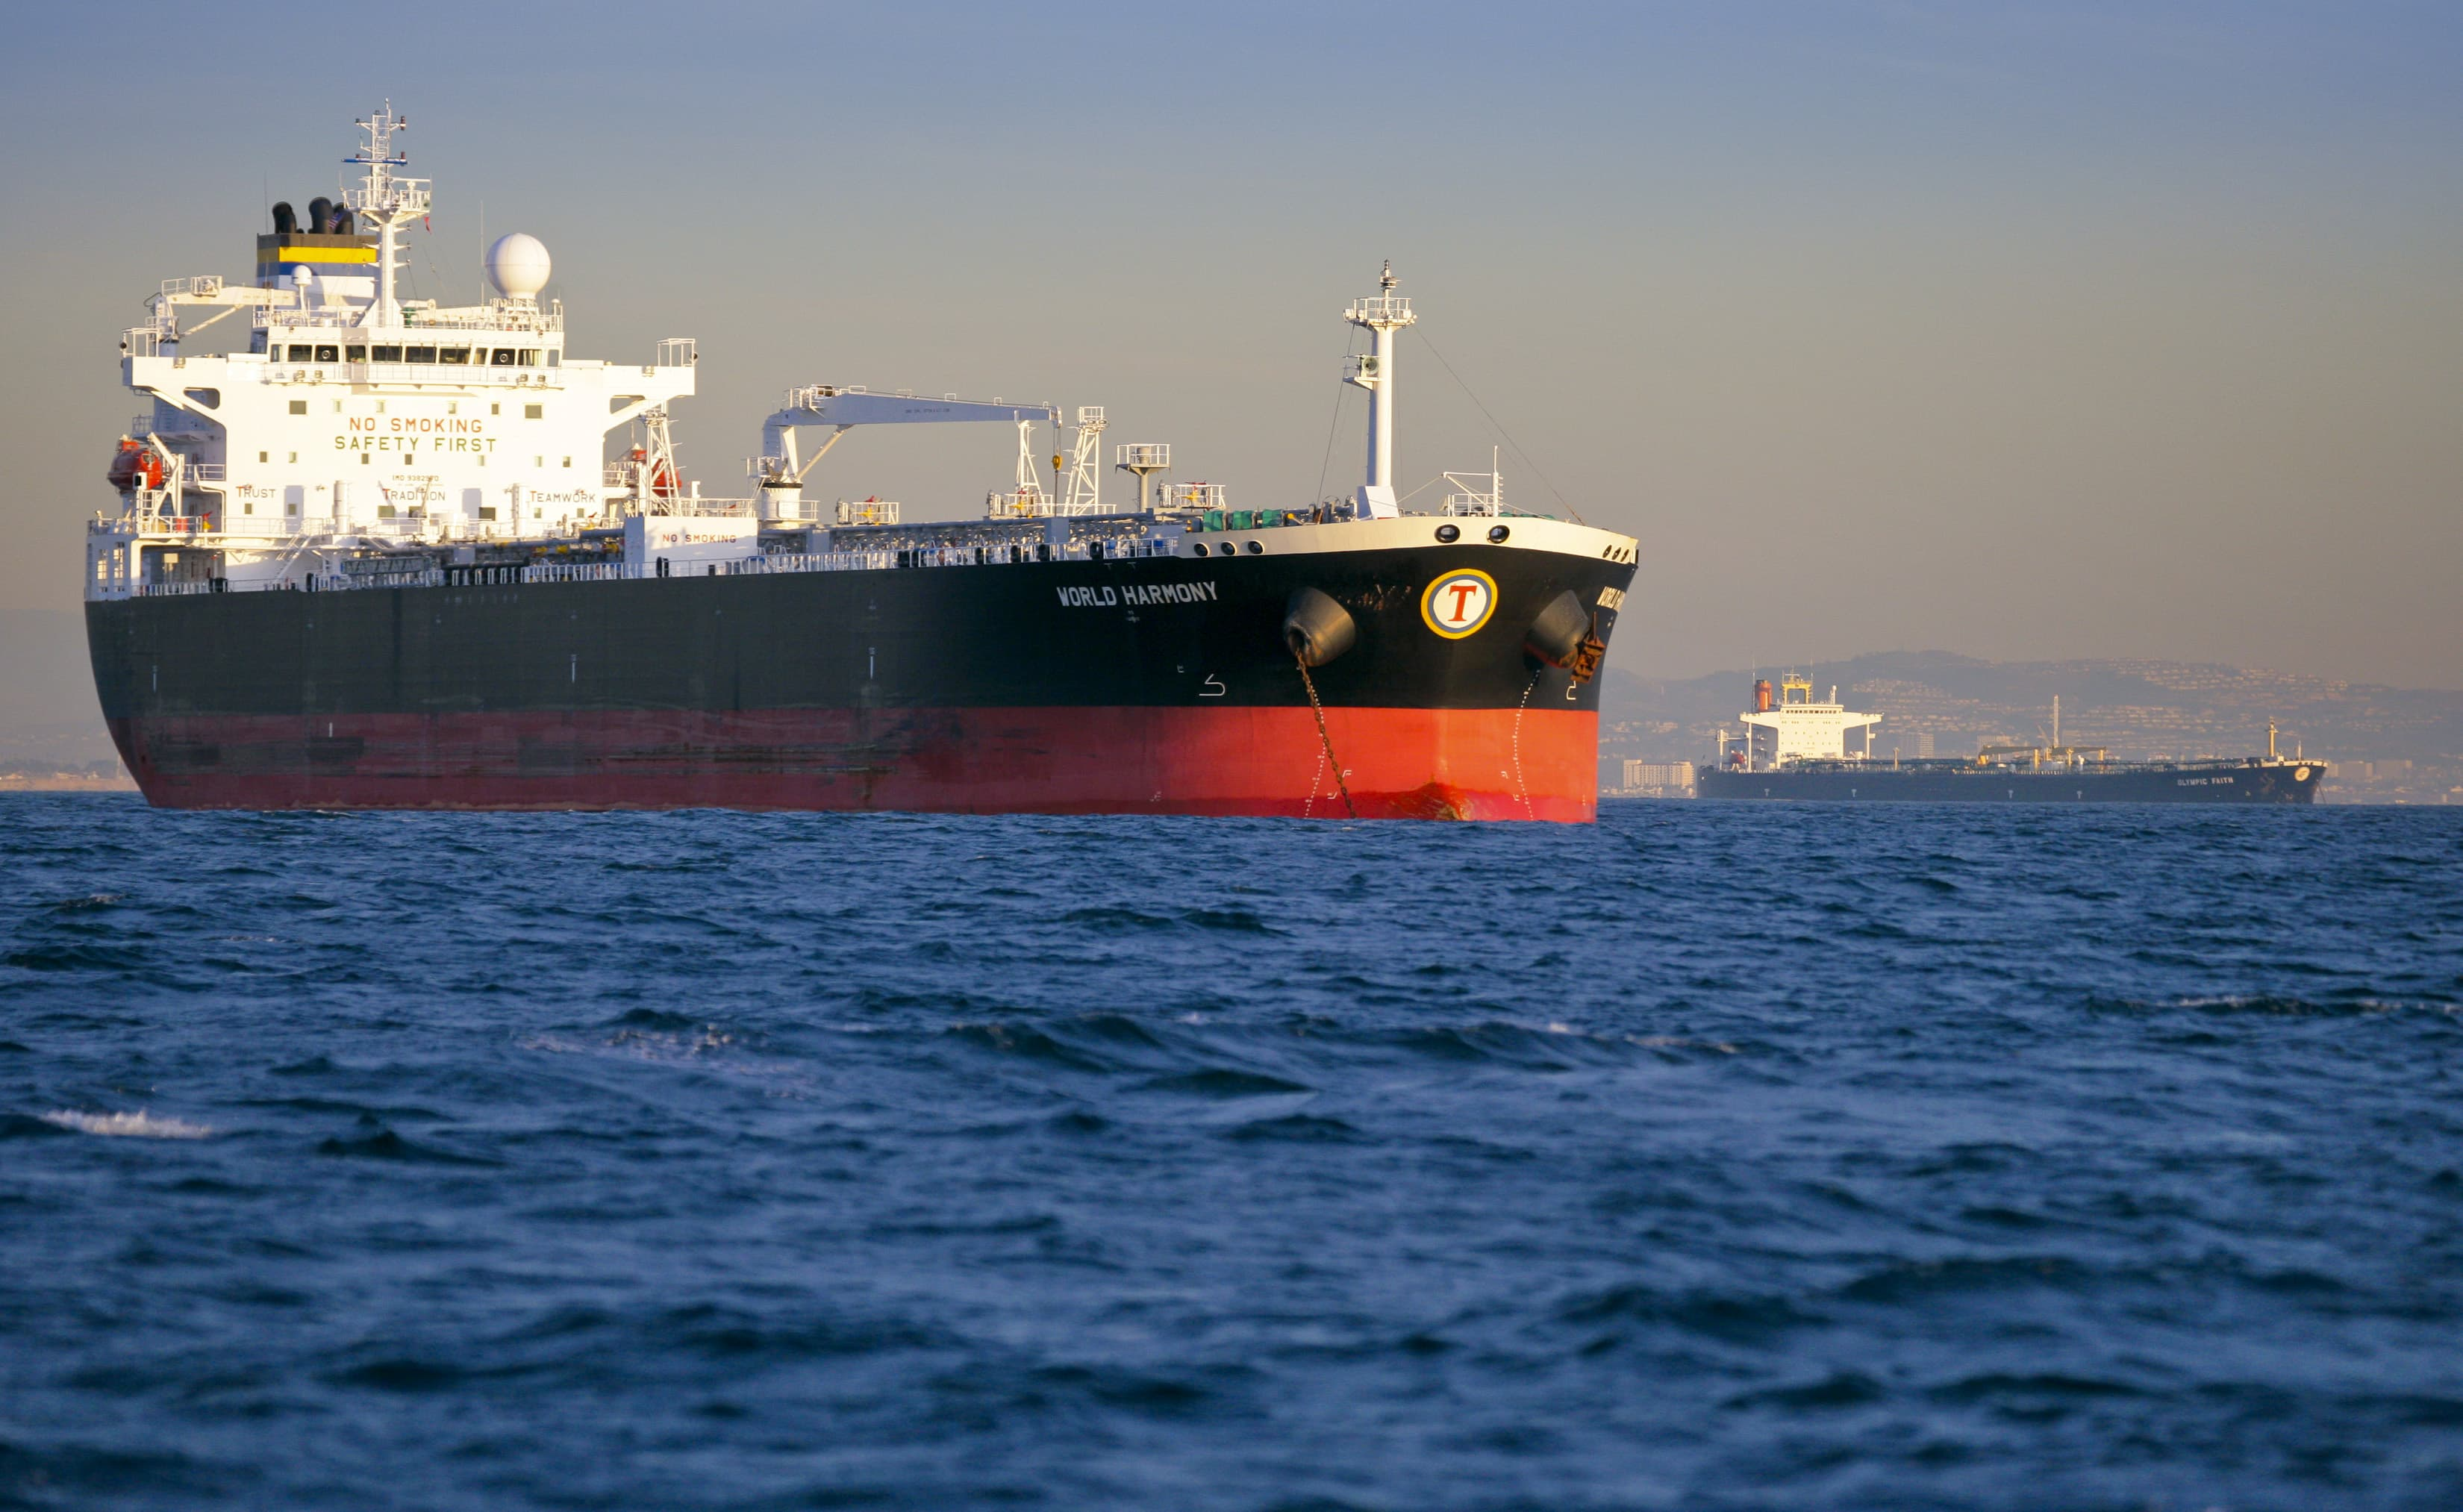 The booming business of oil tankers